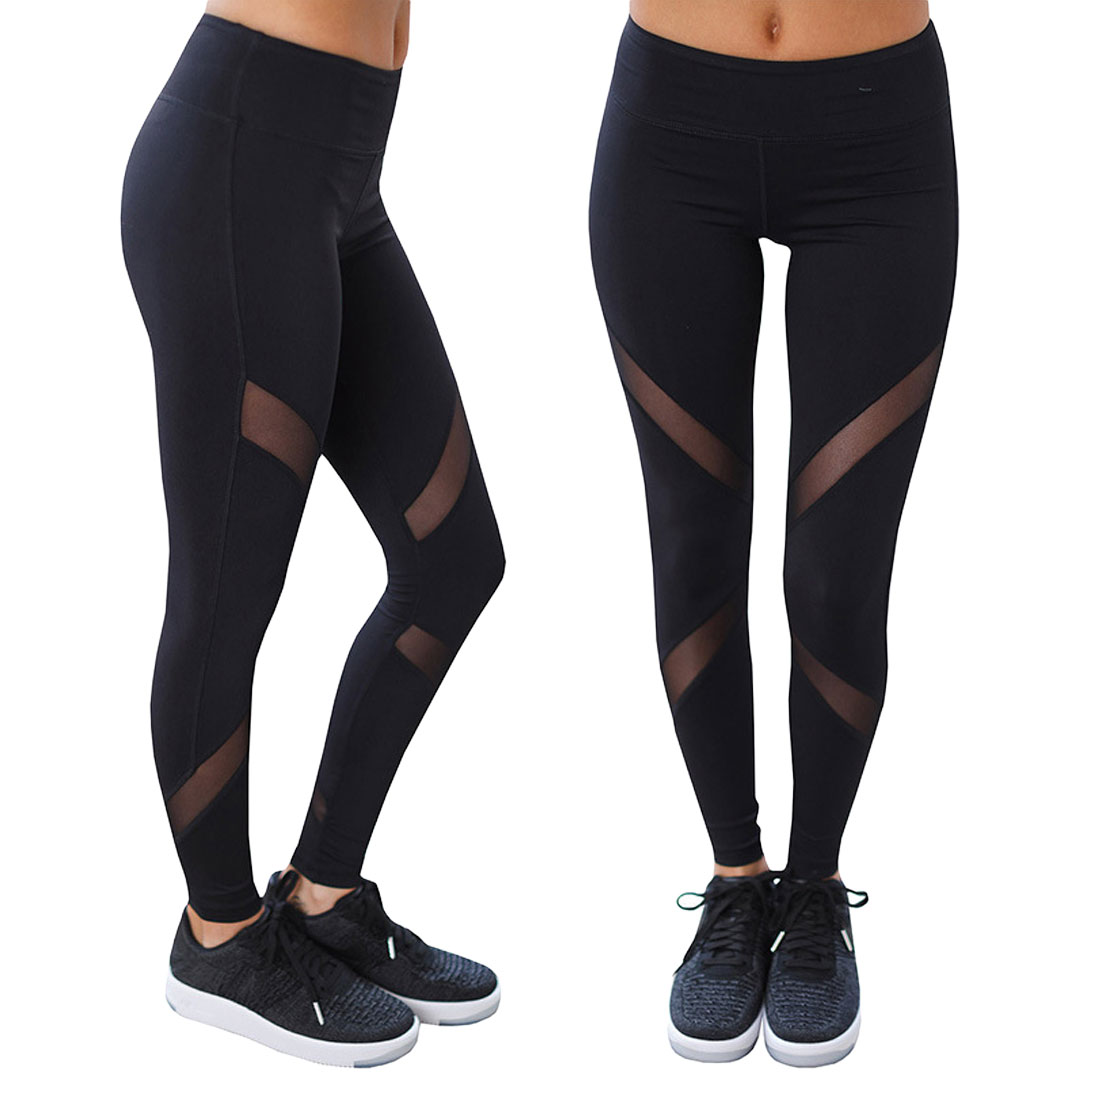 Quick-drying Net Yarn Yoga Pants Black High Waist Elastic Running Fitness Slim Sport Pants Gym Yoga Leggings For Women Trousers